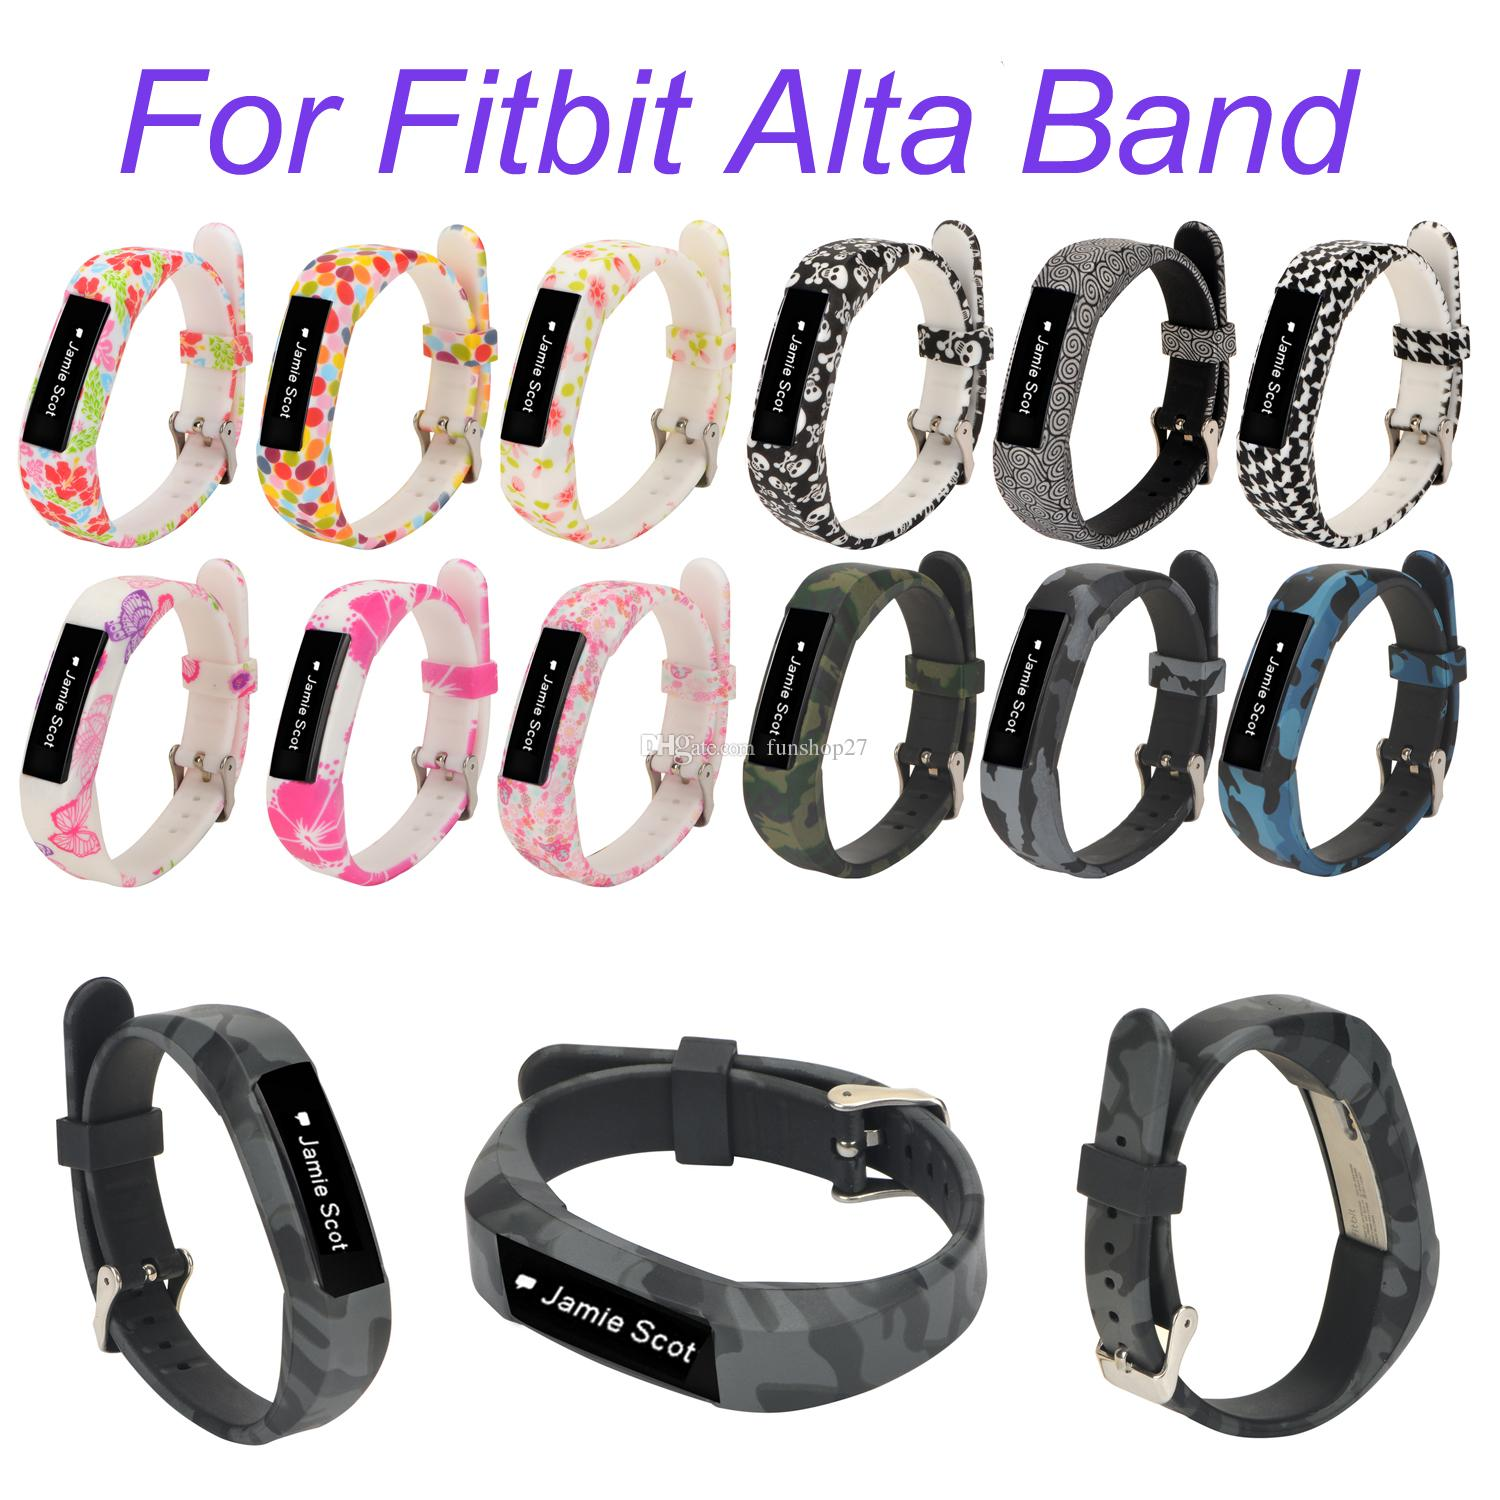 How to fix fitbit alta band